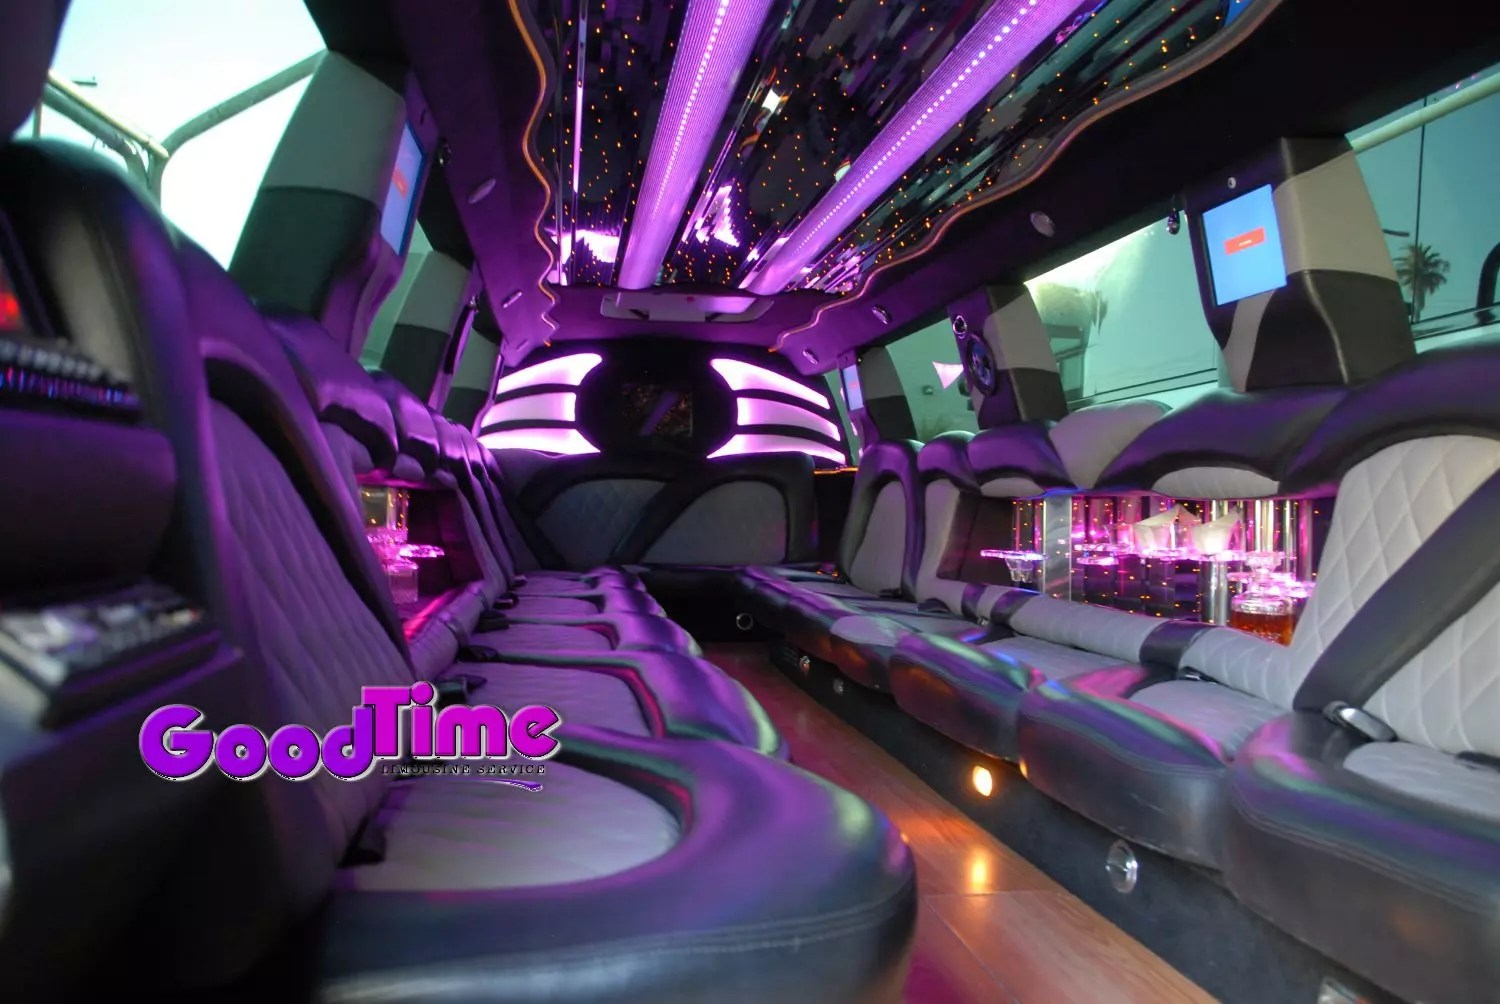 cadillac escalade suv stretch limo 22 passenger interior 2 1 LIMO RENTAL FLEET